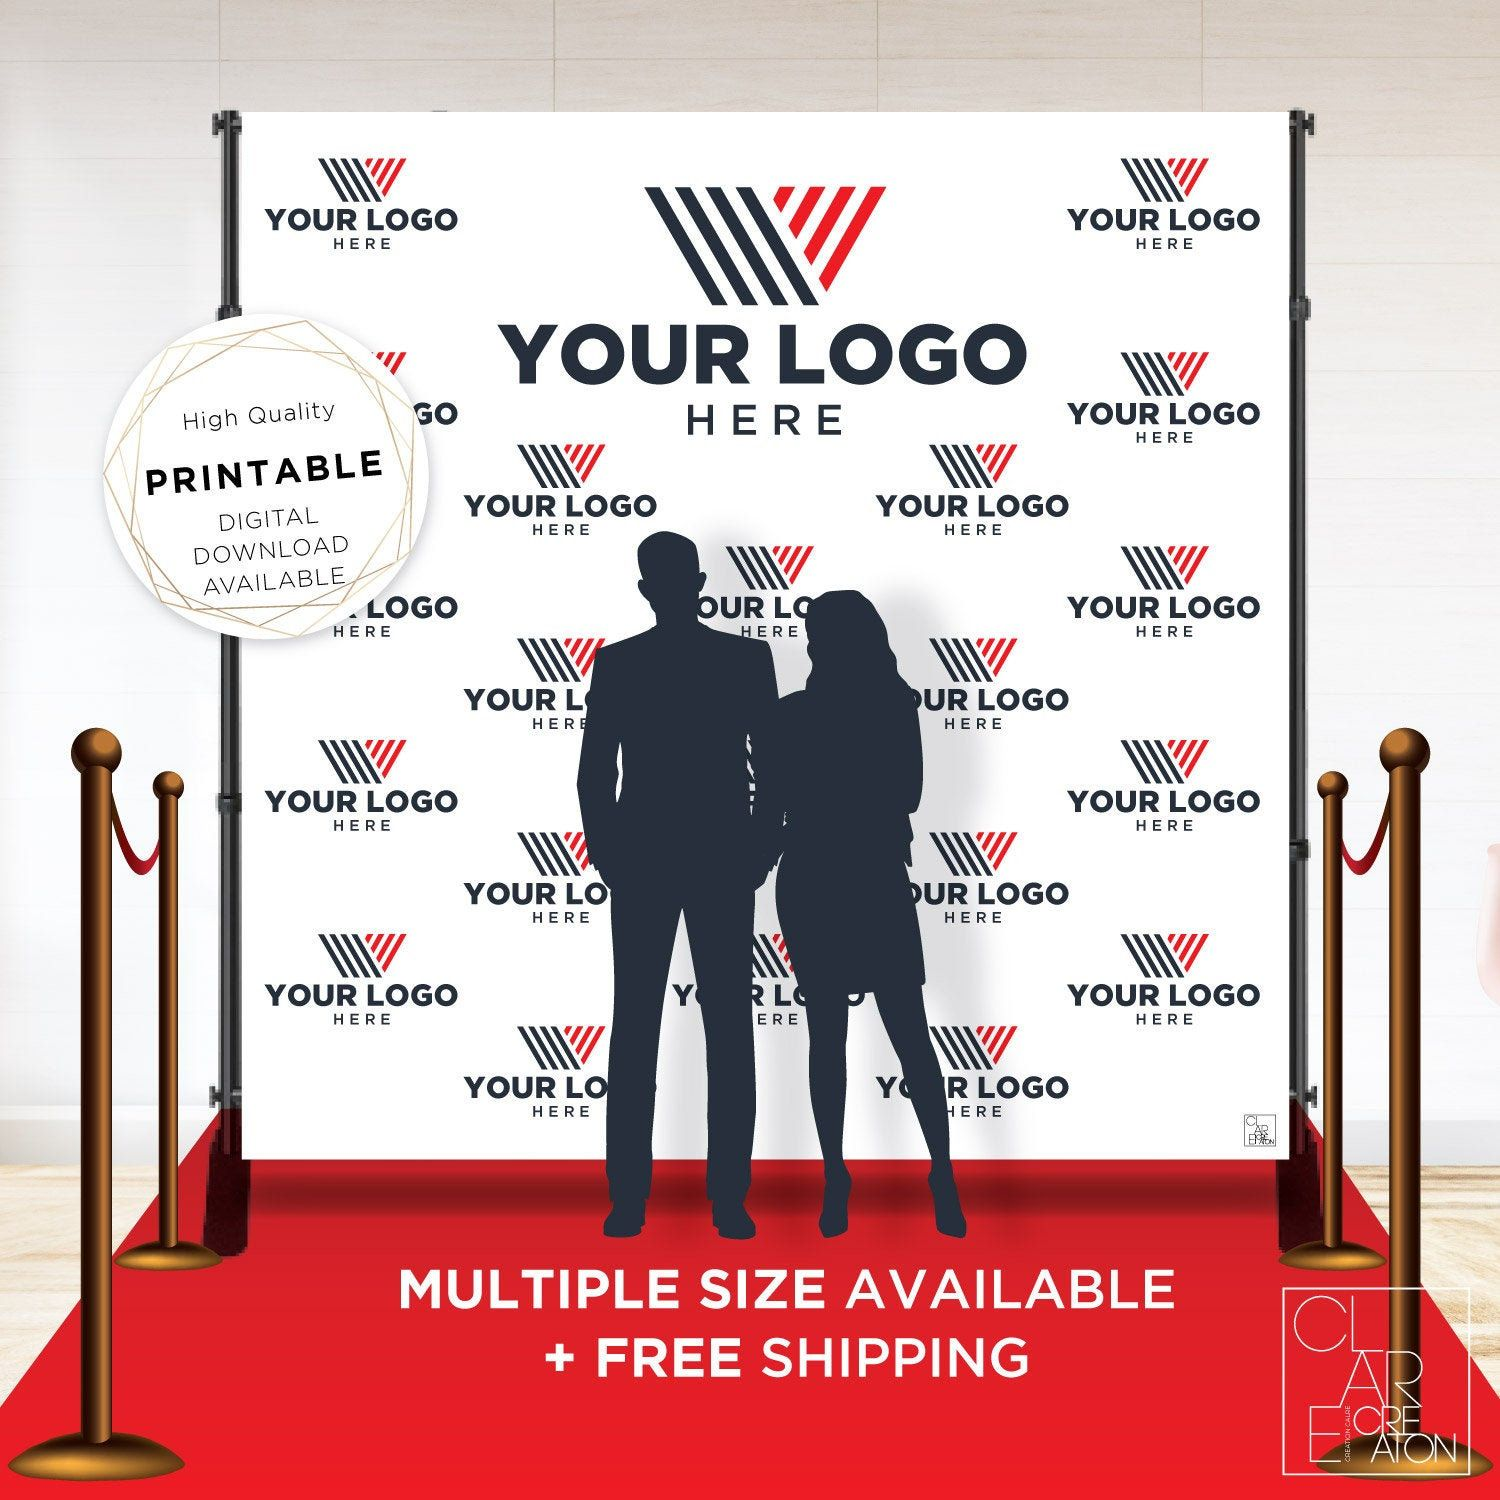 Company Custom Logo Backdrop Banner Step And Repeat Business Etsy In 2020 Custom Logos Event Backdrop Vinyl Banners